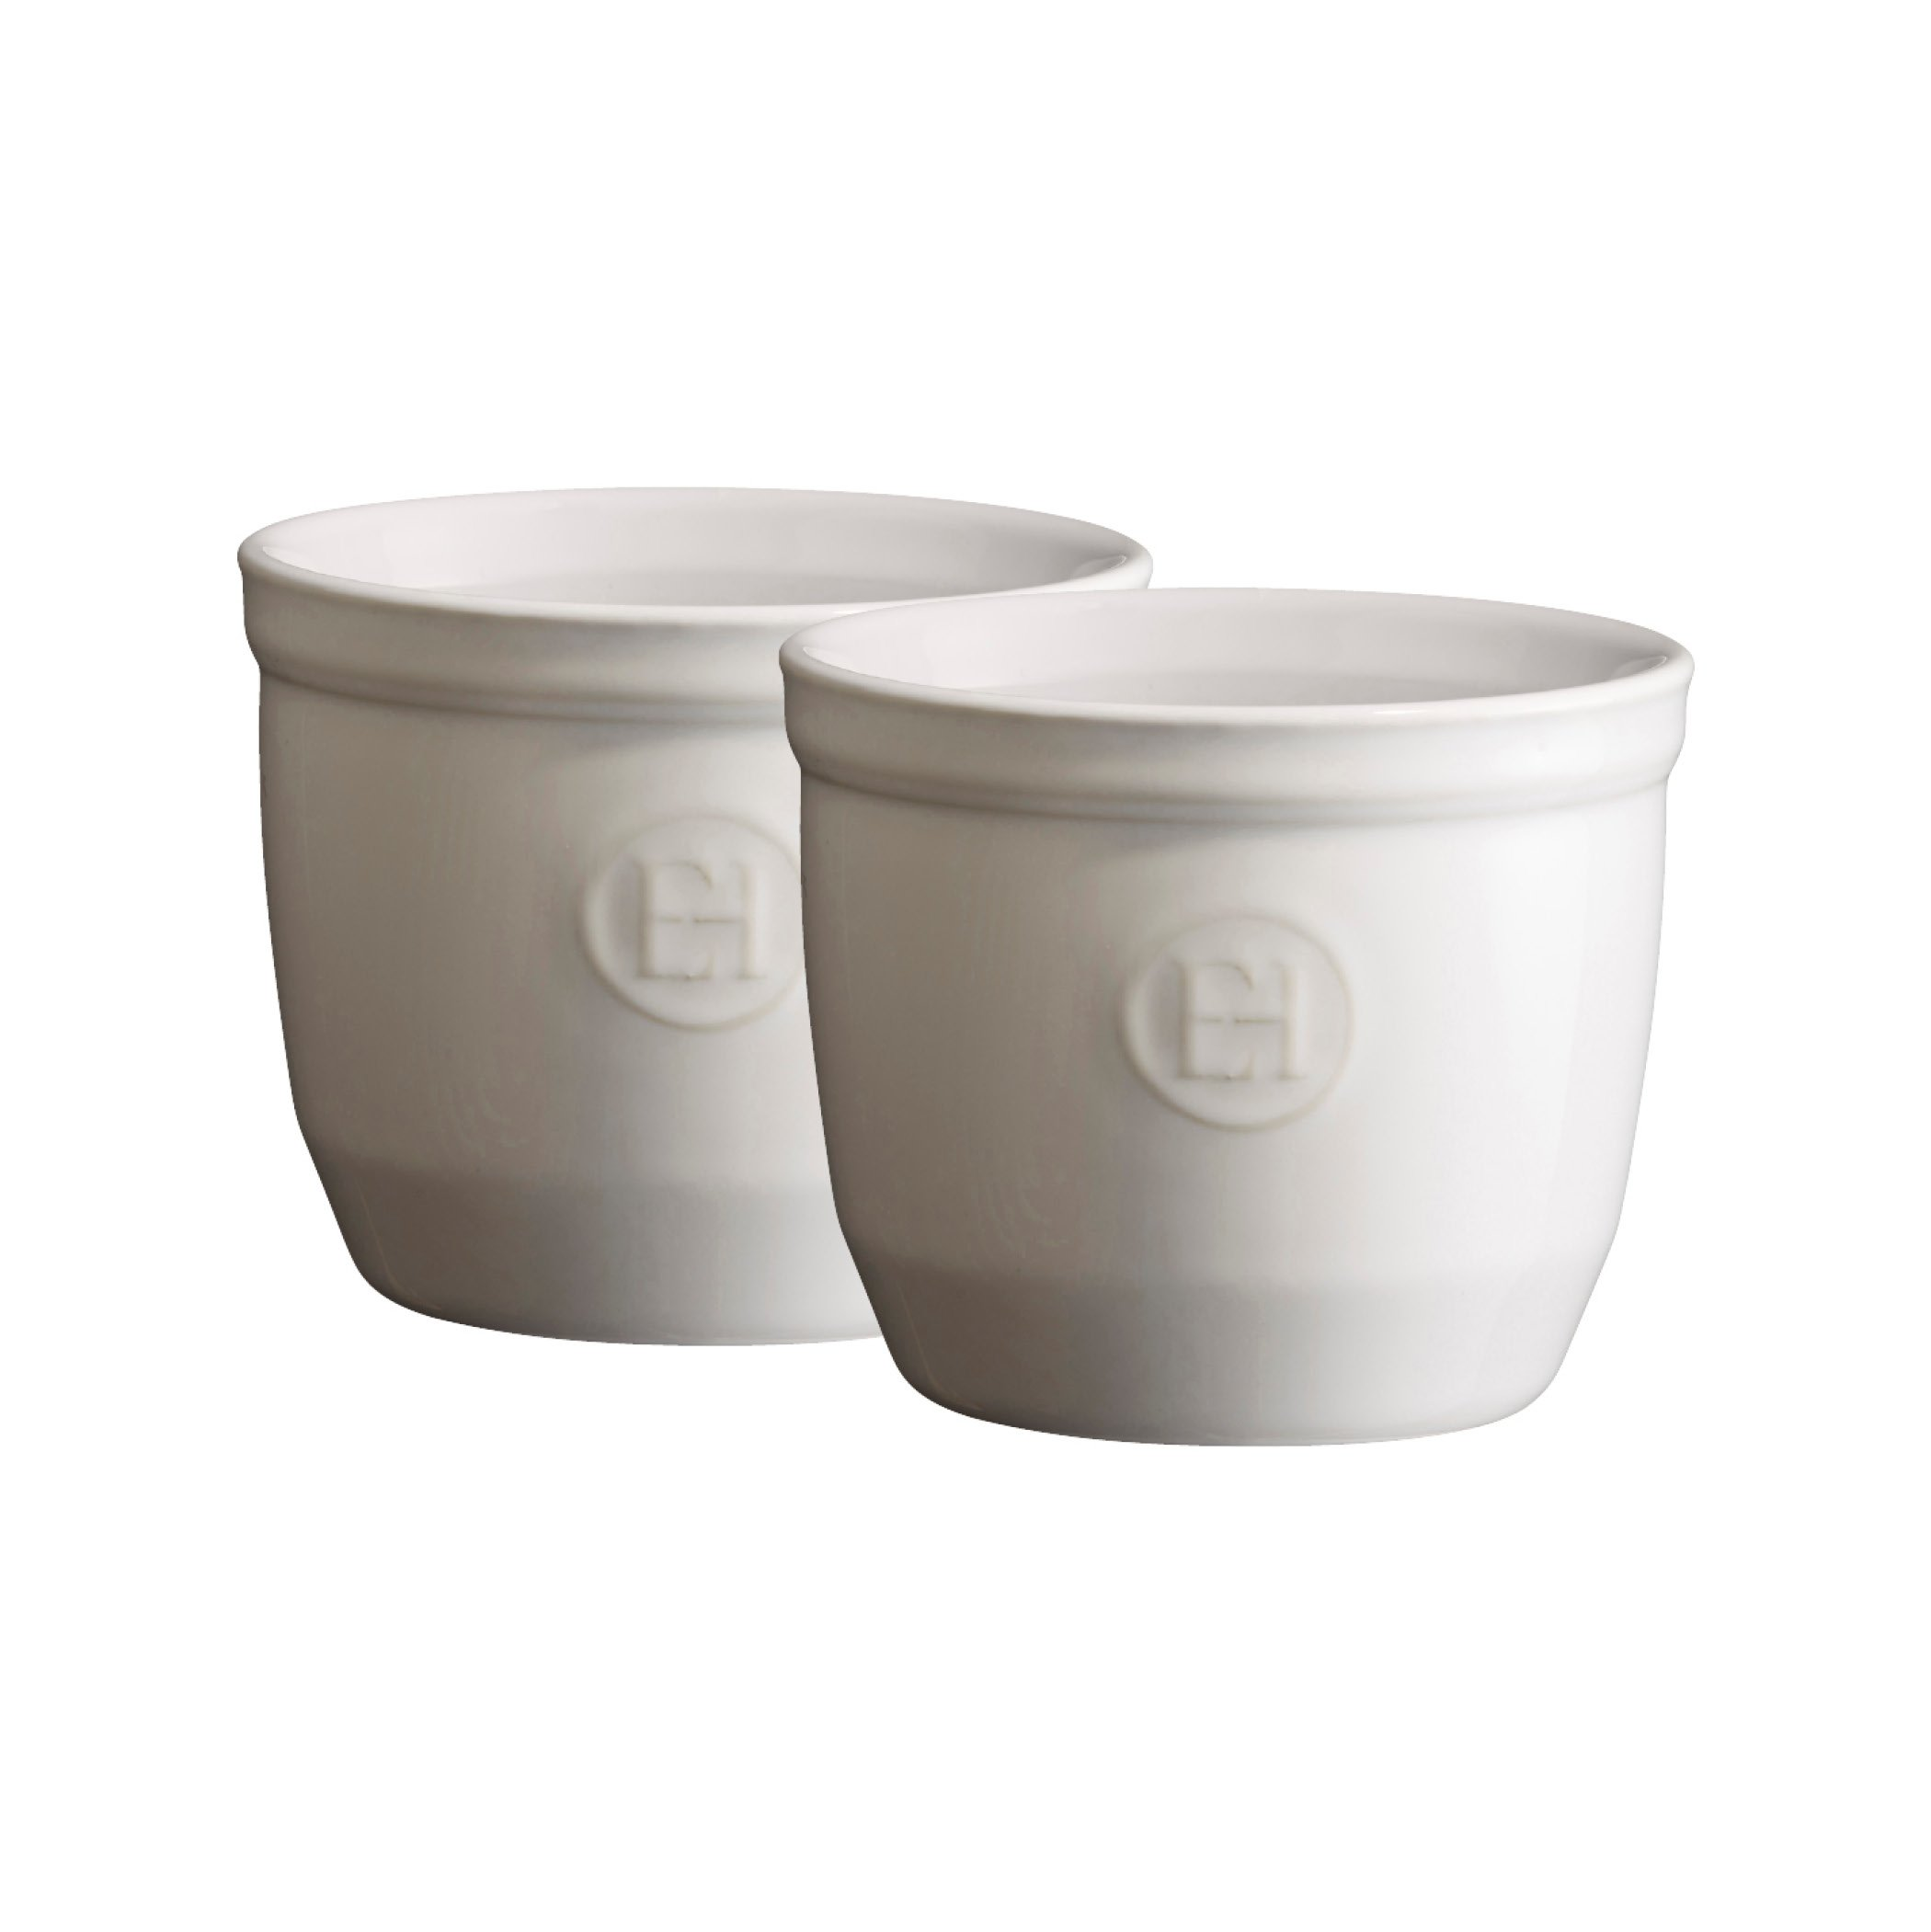 Emile Henry Made in France  6.75 oz  Ramekin (Set of 2), 3.25'' by 2.75'', Flour White